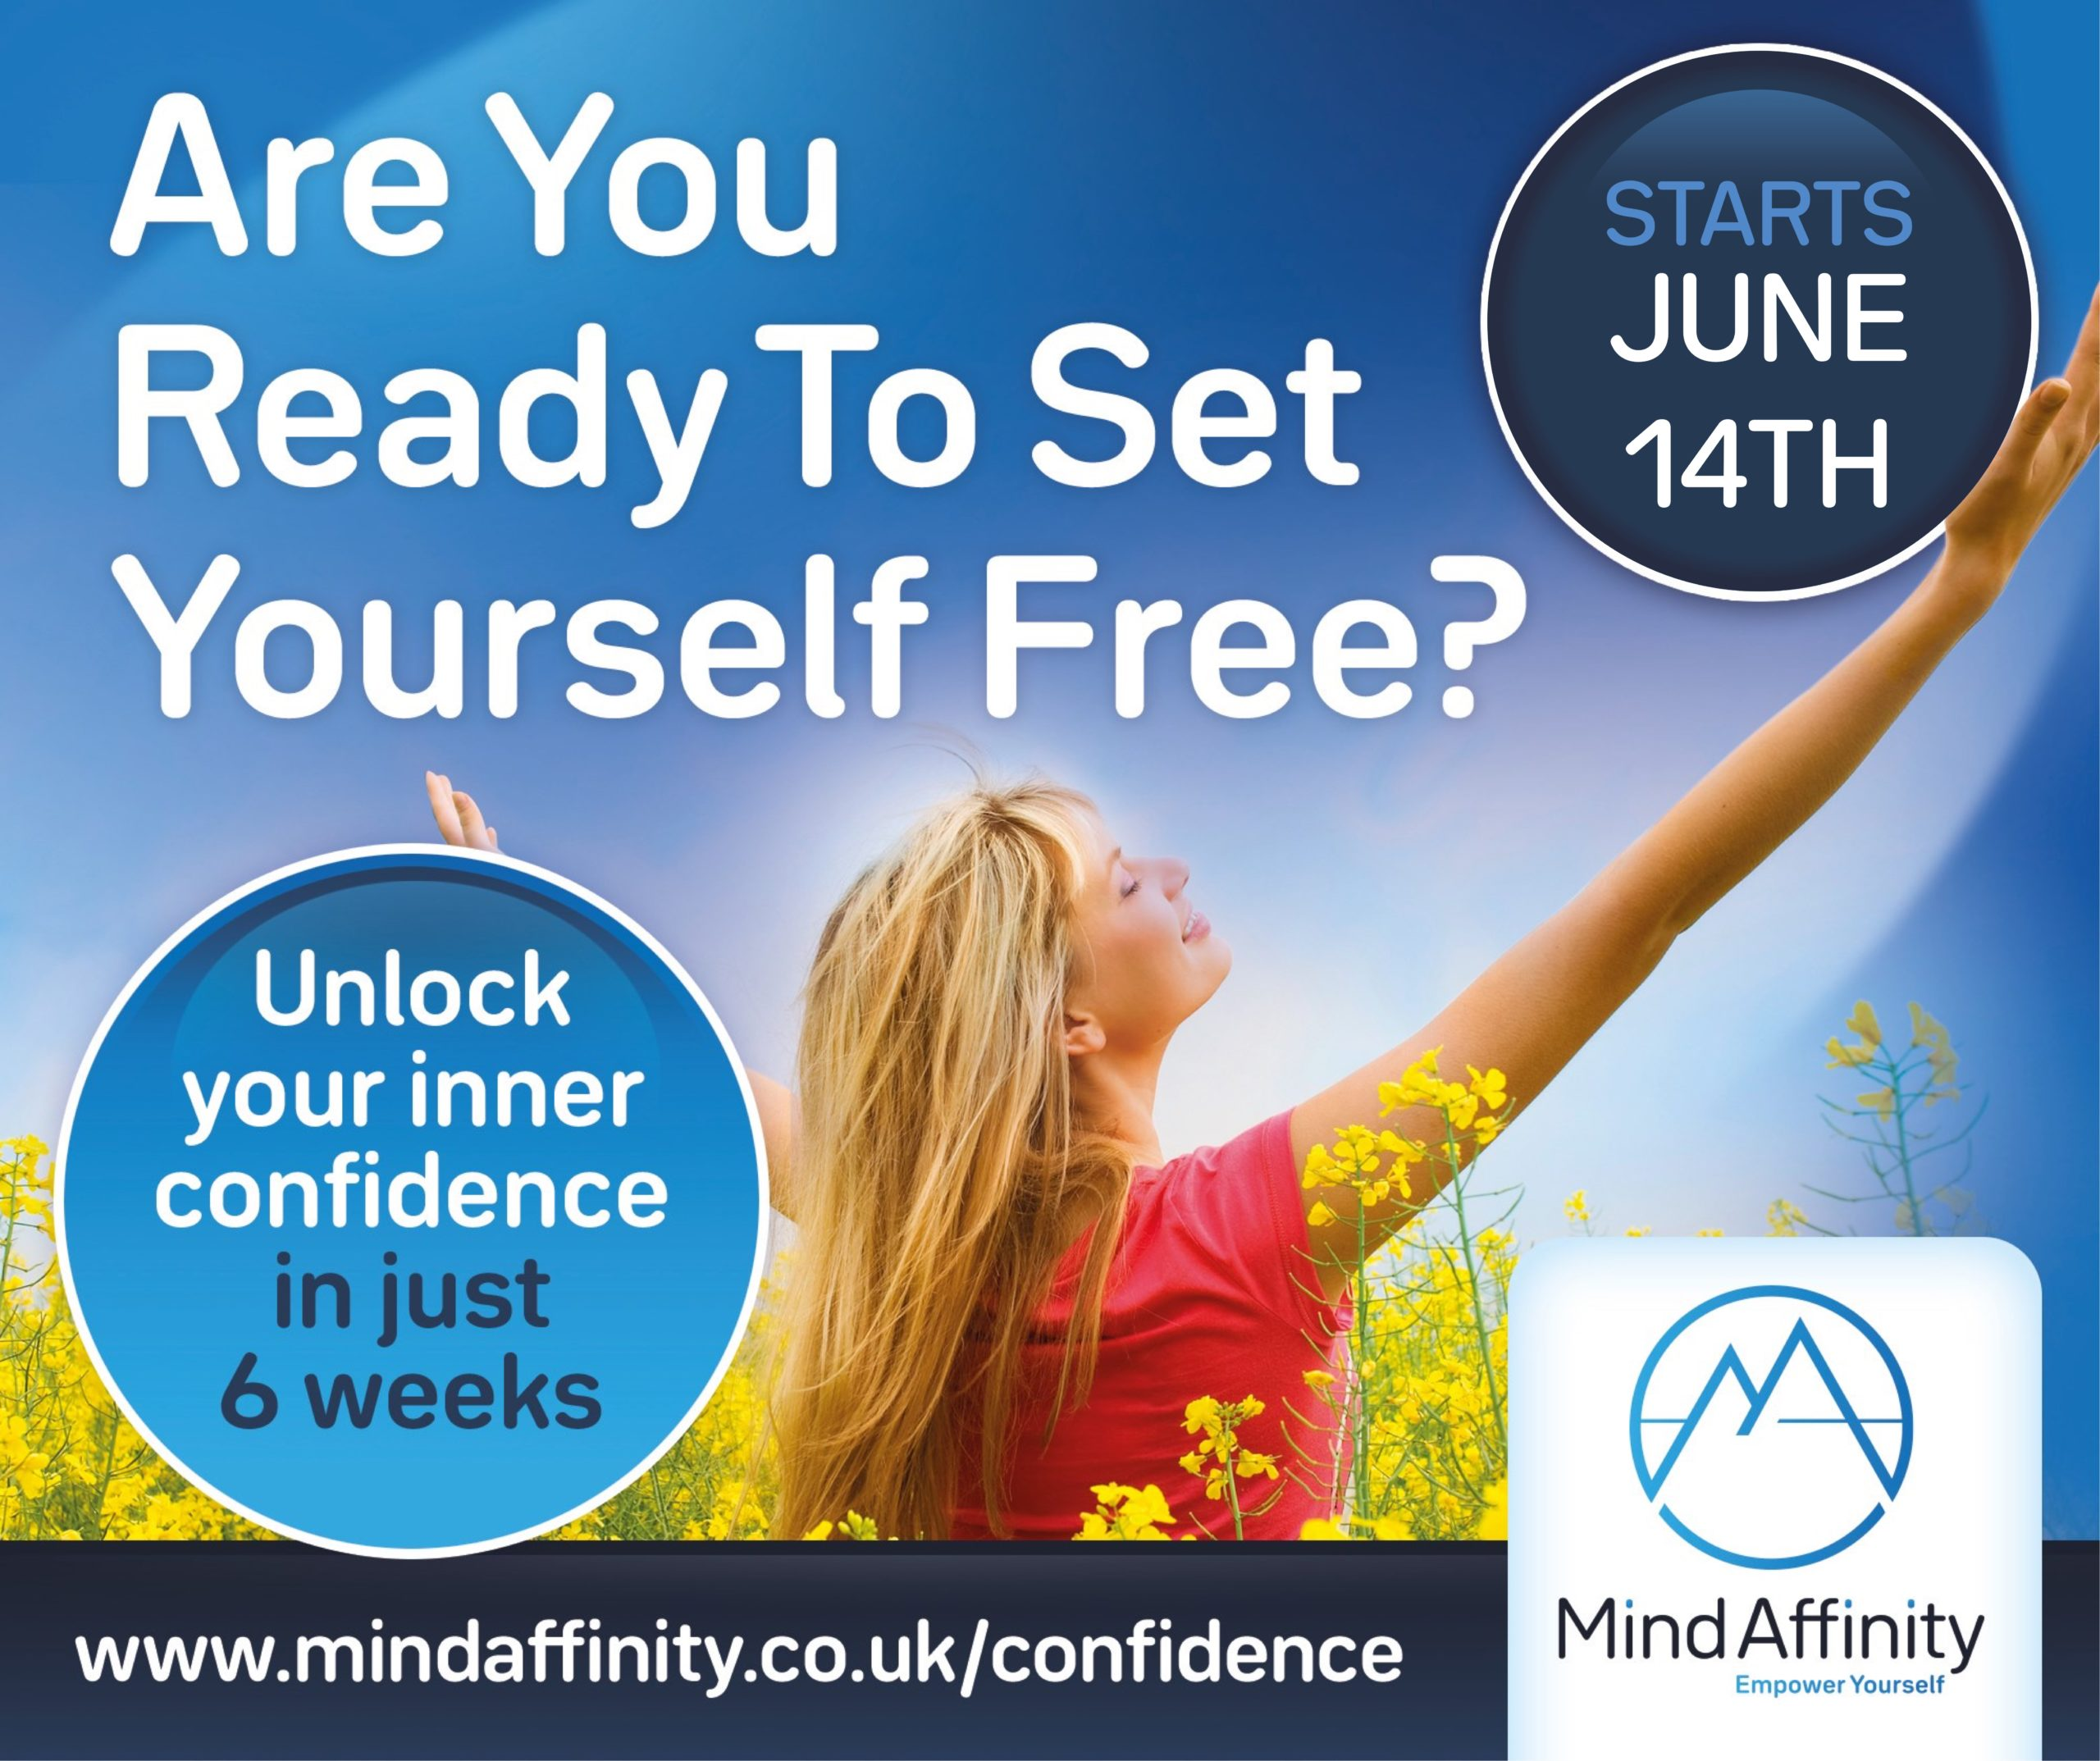 Are You Ready To Set Yourself Free?